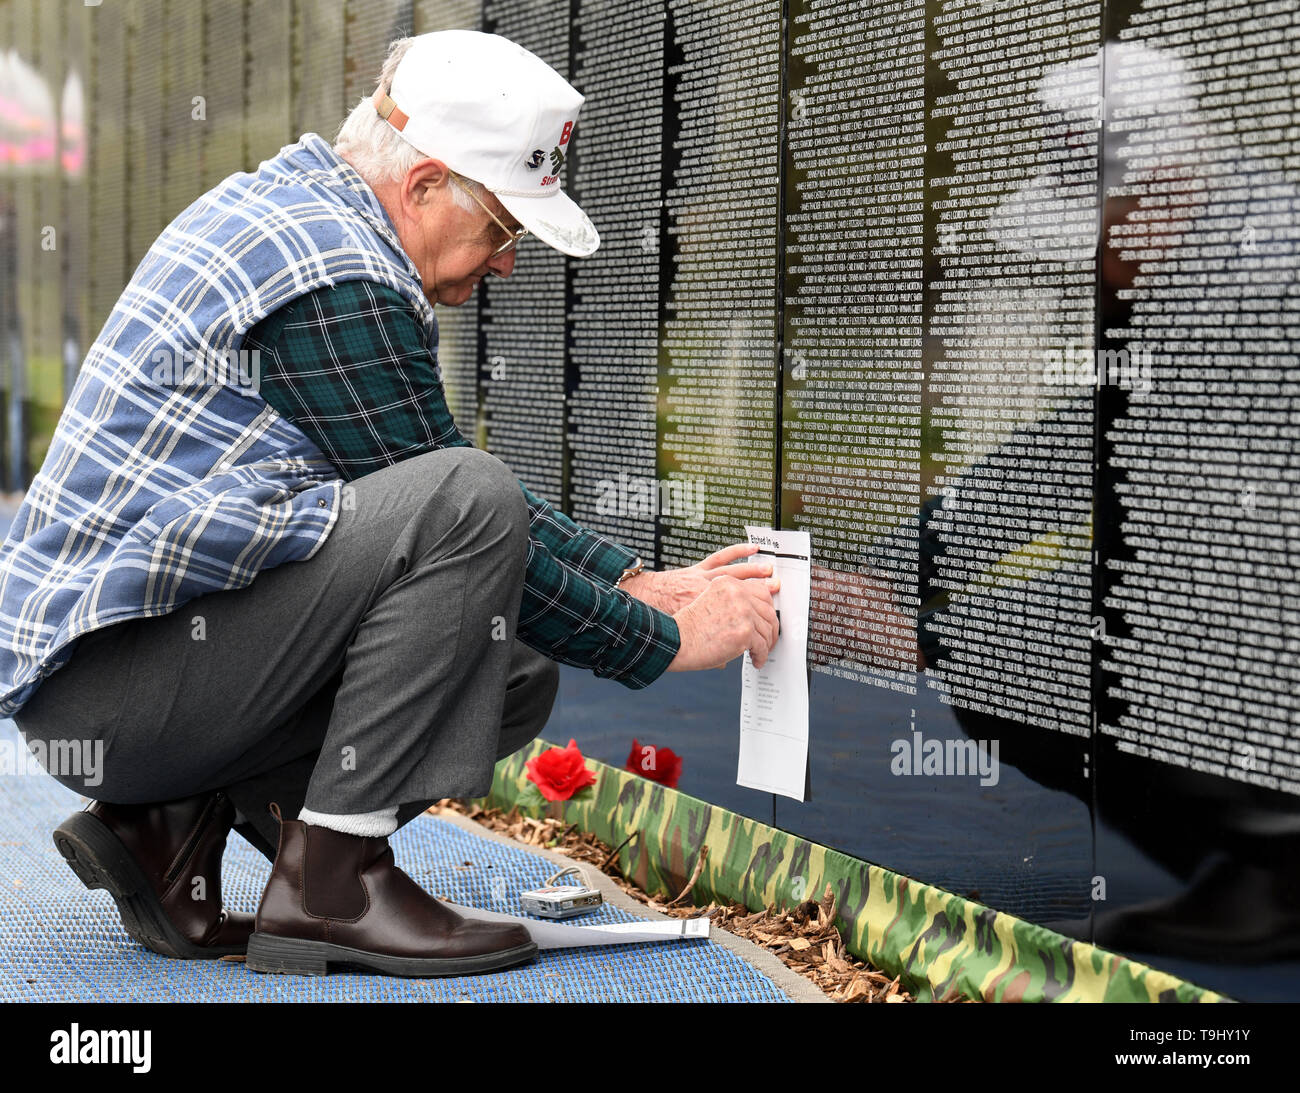 May 18, 2019, Racine, Wisconsin, U.S.: Andris Vinakmens etches the names of his high school classmate Tony Albasio at the Moving Wall, a half-size replica of the Vietnam Veterans Memorial, in Racine. Another classmate, Ed Wyatt, also died in Vietnam. The three served on B-52 bombers. Forty-seven soldiers from Racine were killed during the war. The Moving Wall has been touring the United States for more than 30 years. Credit: Mark Hertzberg/ZUMA Wire/Alamy Live News - Stock Image